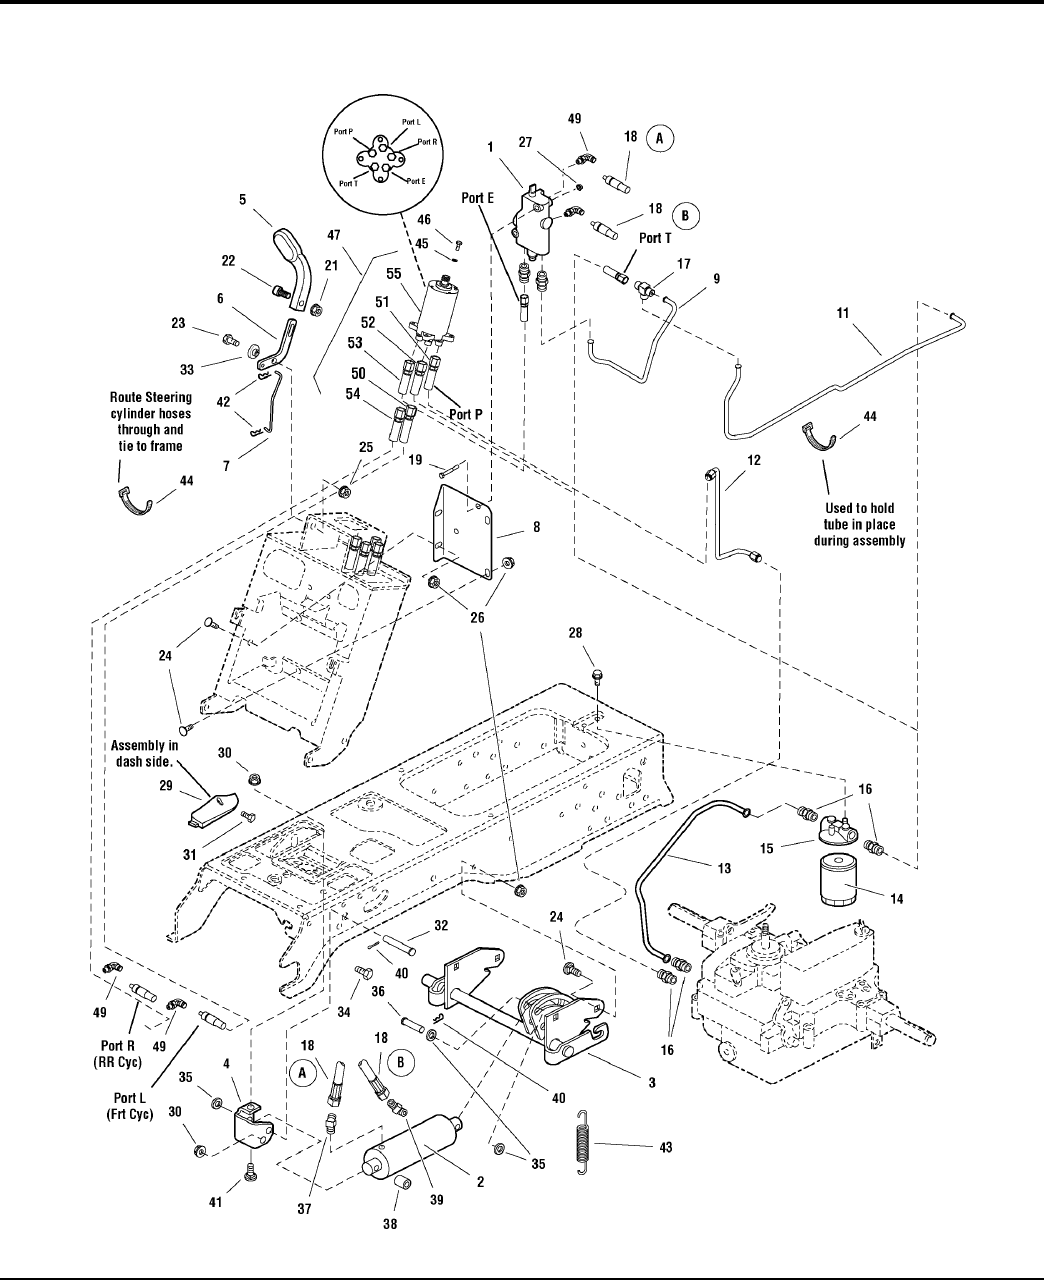 Page 30 of Simplicity Lawn Mower 27HP User Guide